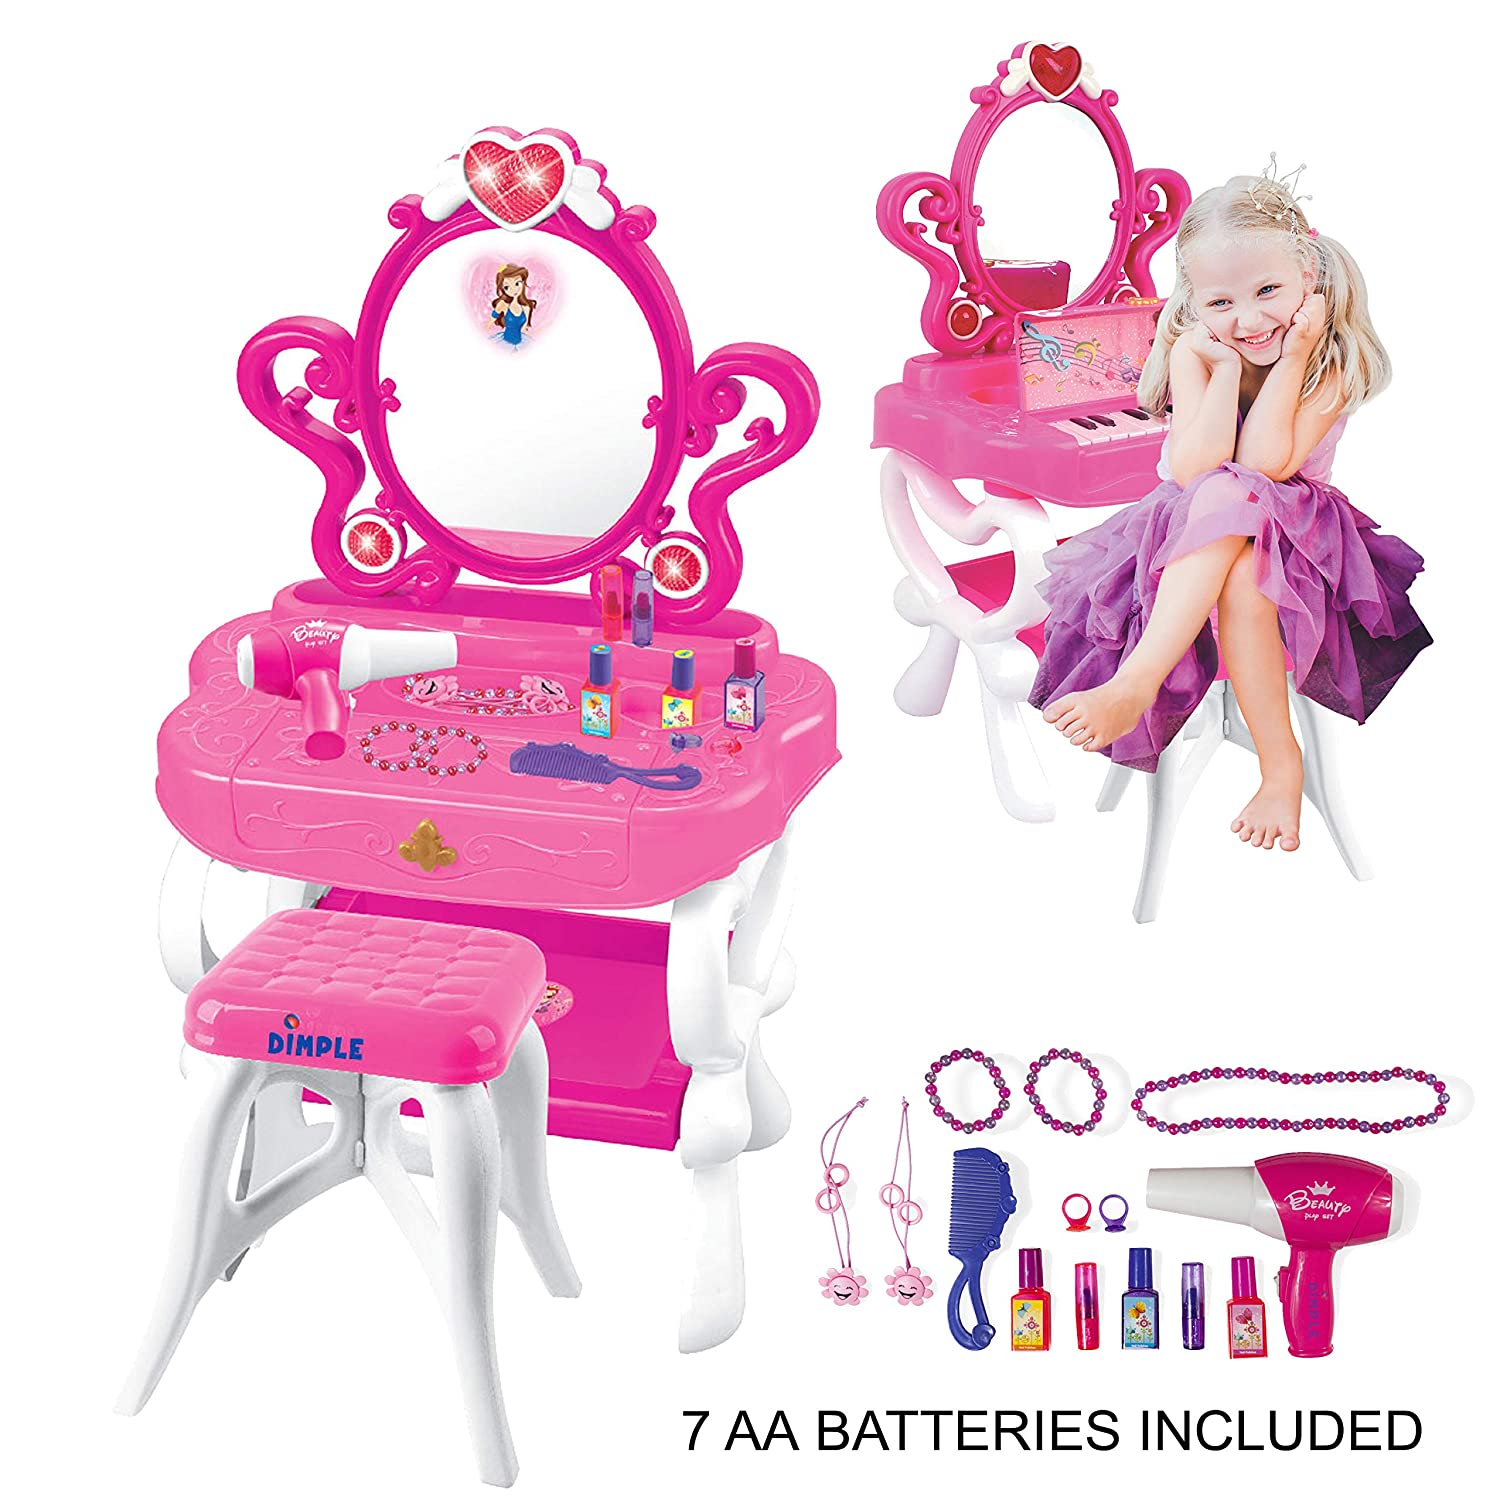 the latest 13068 d2a1c 2-in-1 Musical Piano Vanity Set Girls Toy Makeup Accessories with Working  Piano & Flashing Lights, Big Mirror, Pretend Cosmetics, Hair Dryer - ...